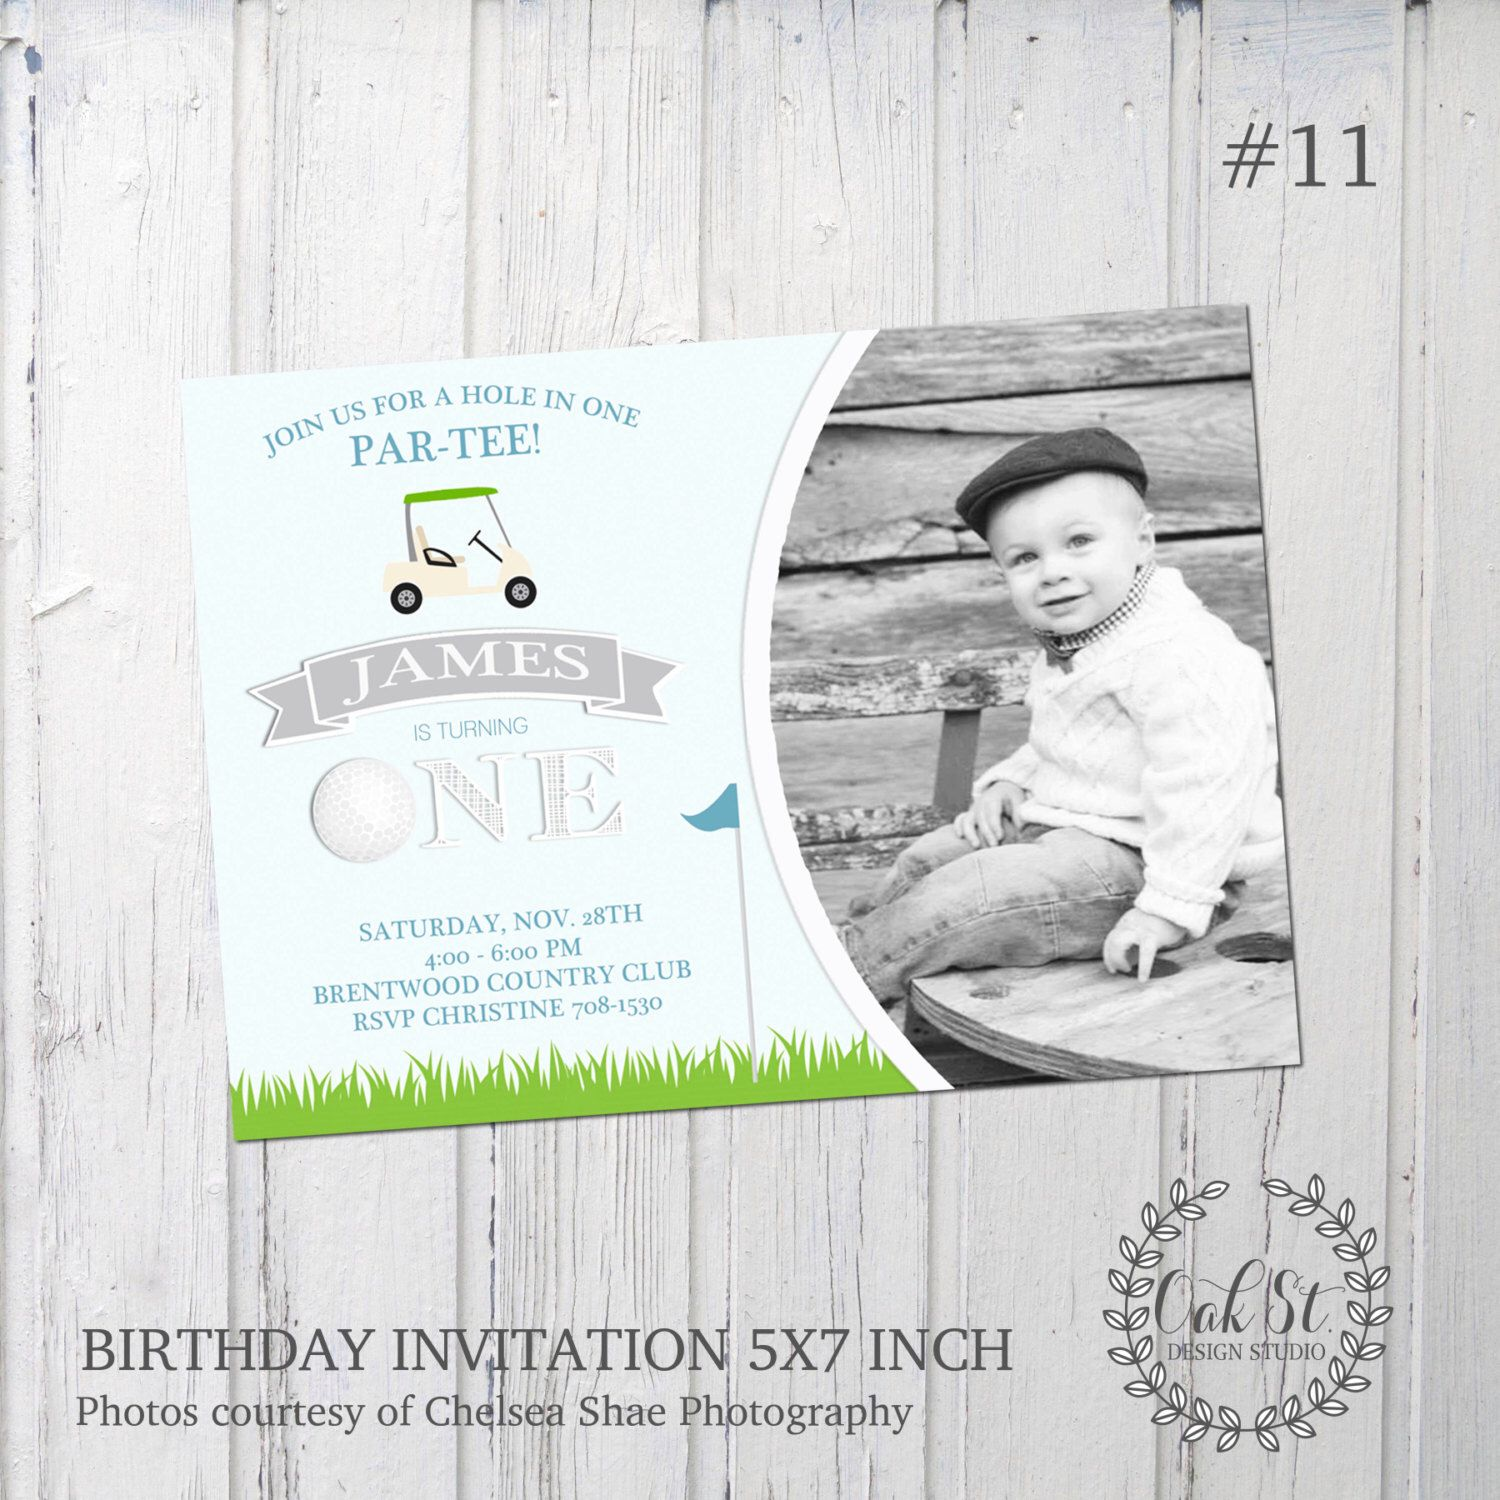 Spring sale golf birthday party invitation golf invite golf party spring sale golf birthday party invitation golf invite golf party first birthday 1st 2nd 3rd 4th birthday boys golf party desig stopboris Gallery